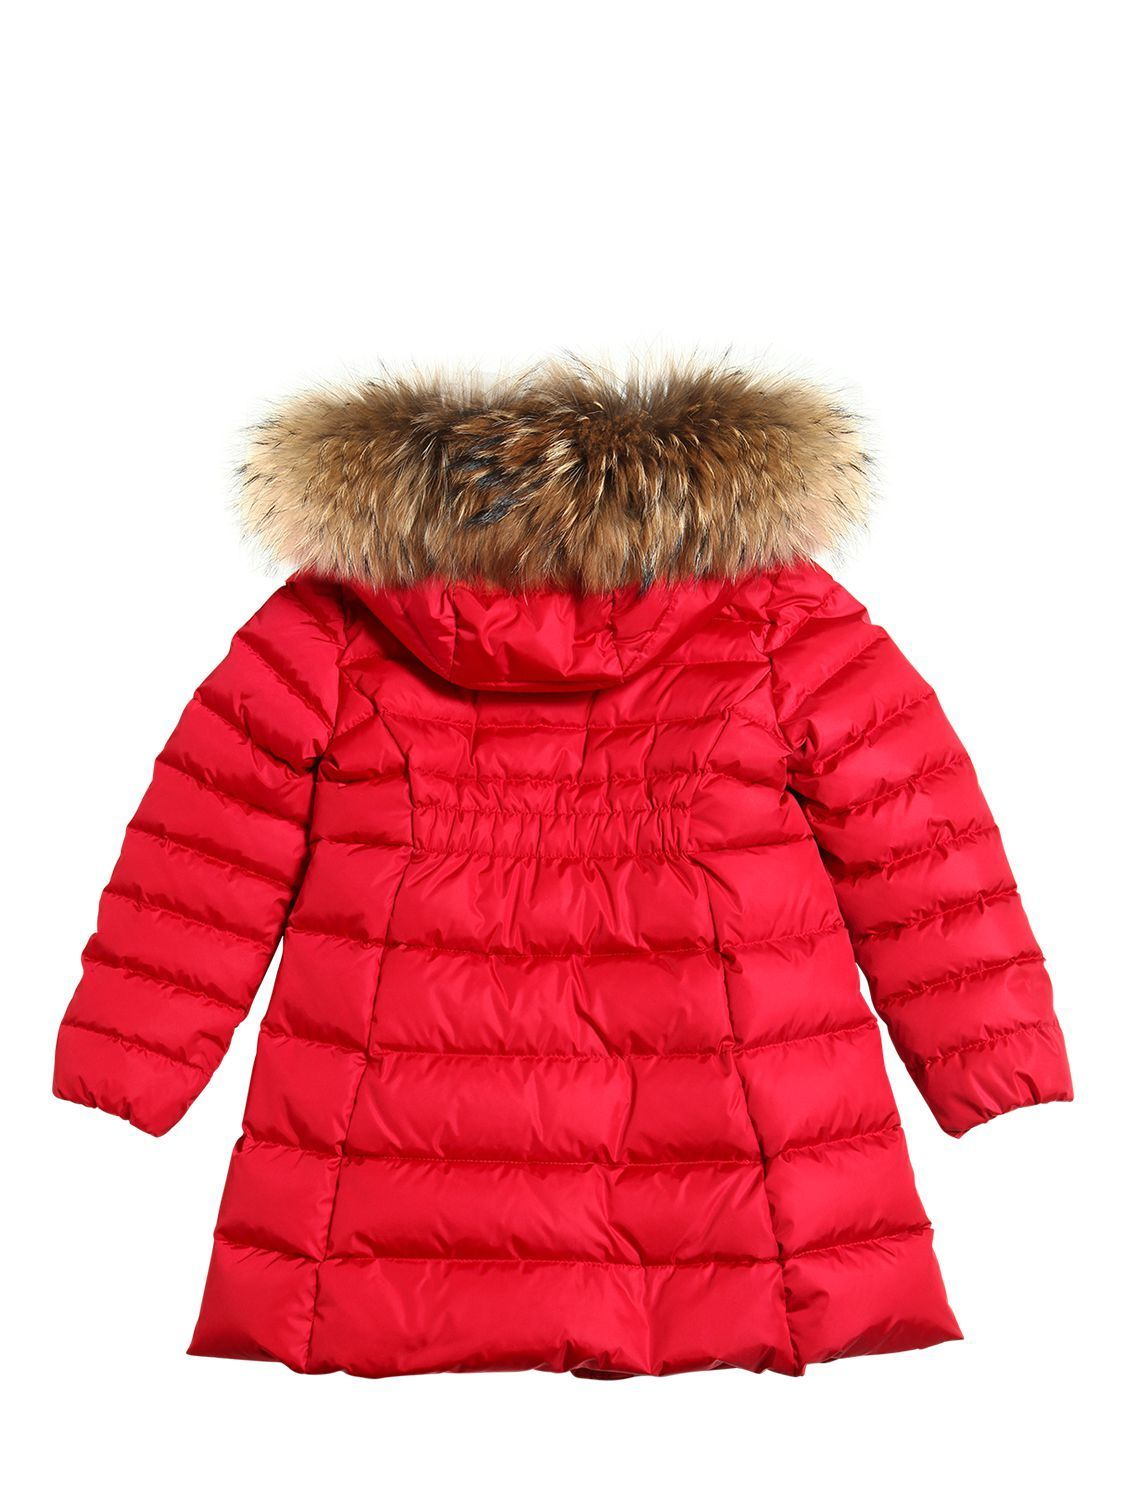 TOPセラー賞受賞!17AW┃MONCLER★4-6歳_NEW NESTE_レッド